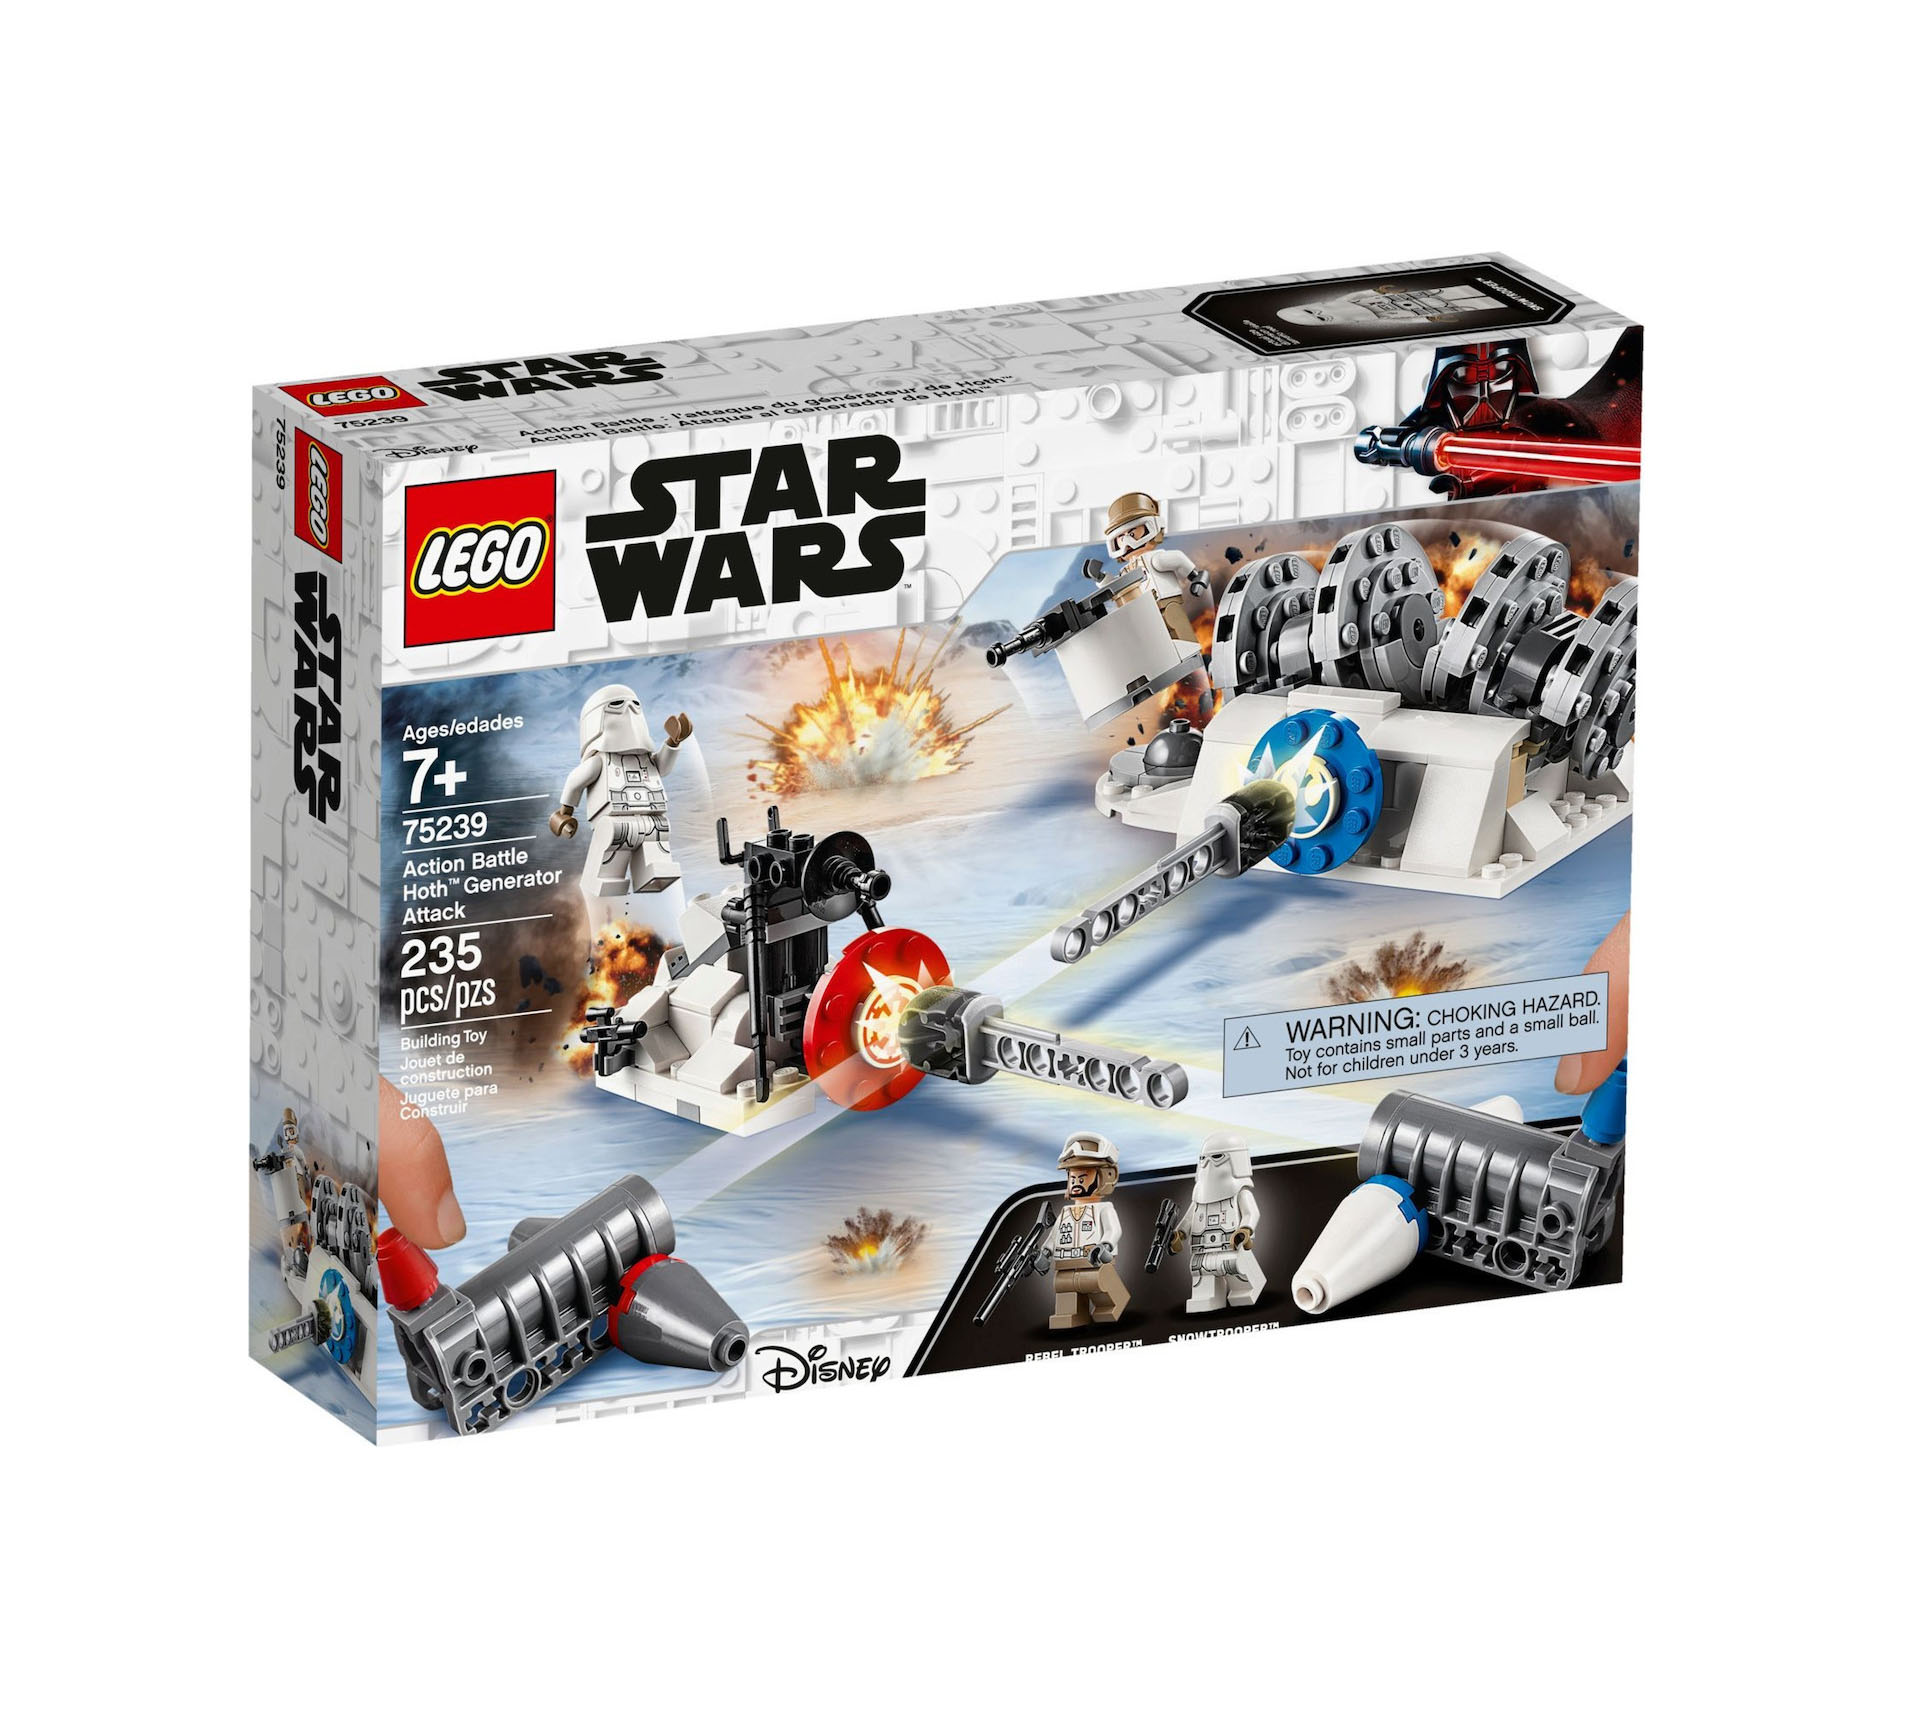 Lego Star Wars: Action Battle Hot Generator Attack 75239